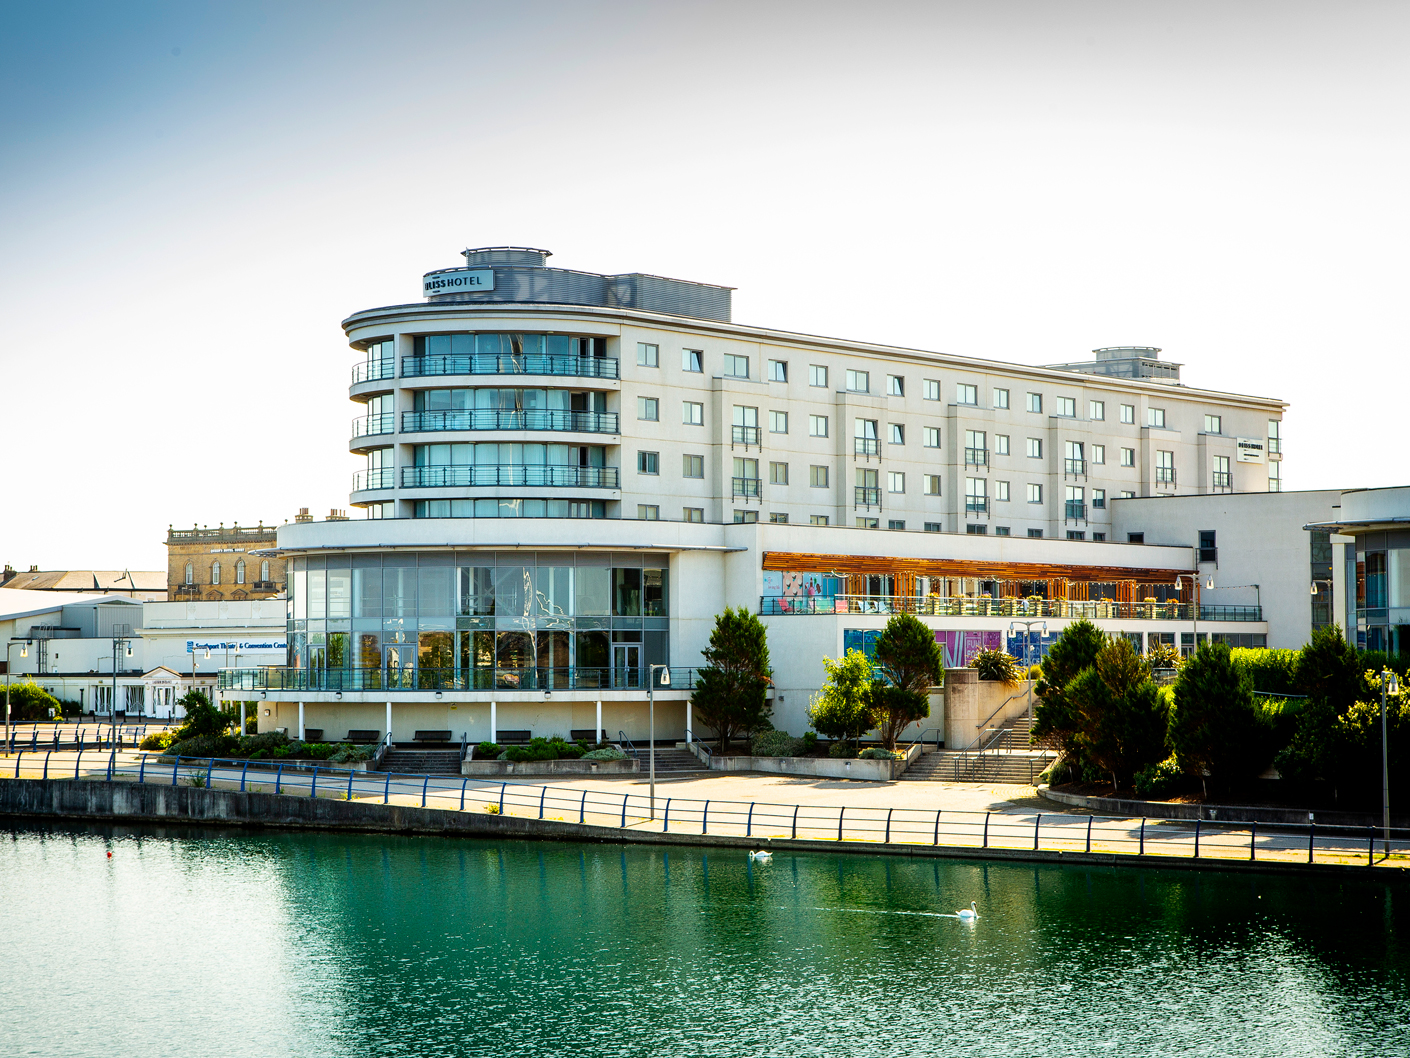 architecture-photography-og-the-bliss-hotel-southport